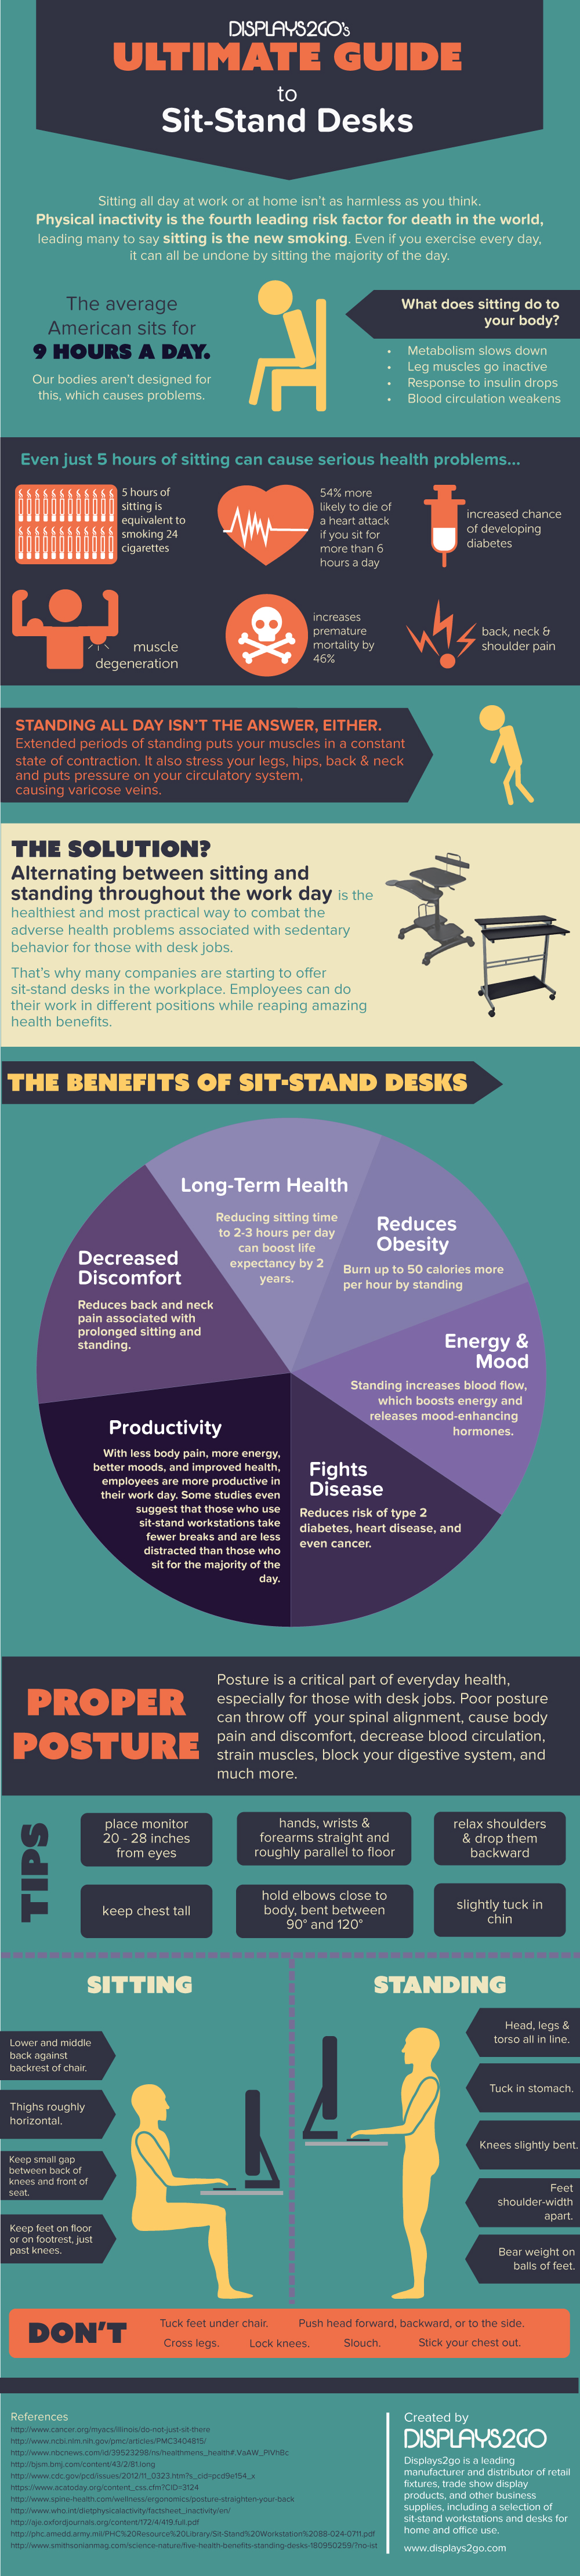 Switch to Sit-Stand Desks to Improve Health and Productivity